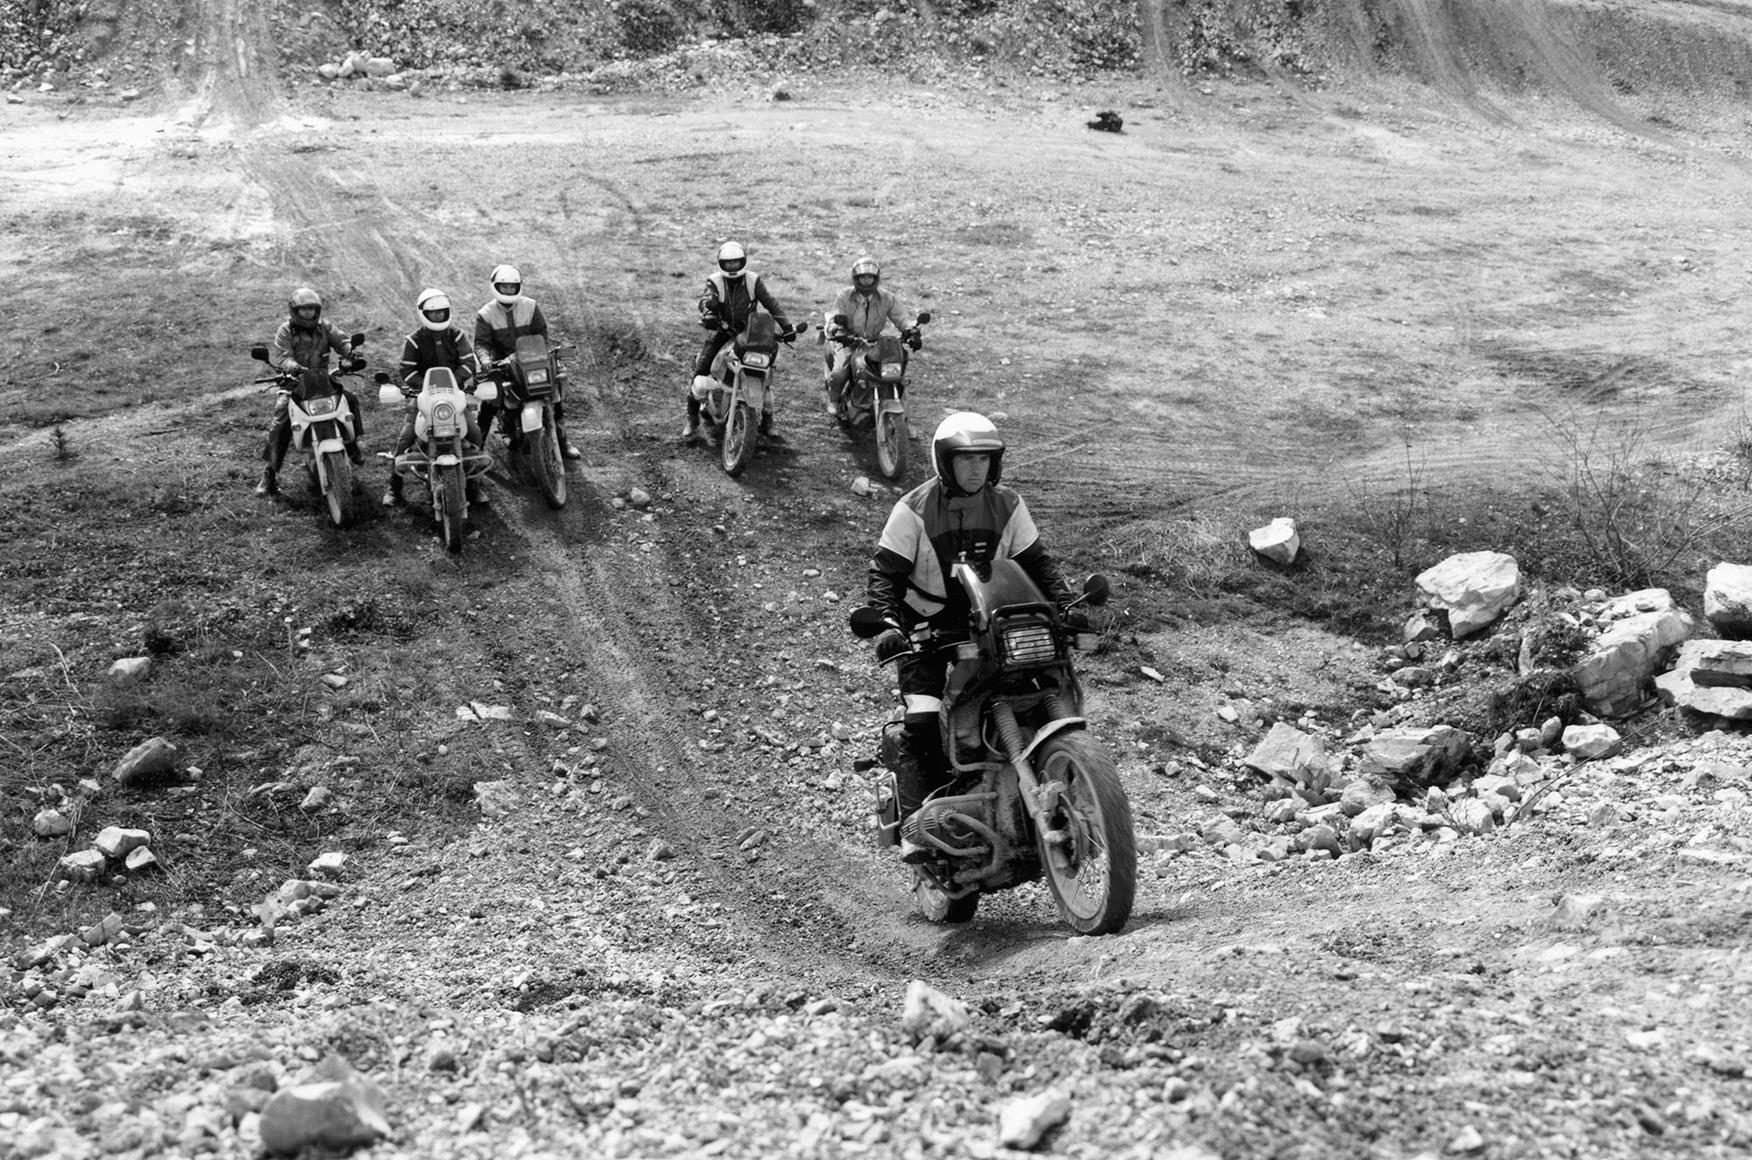 BMW riders enjoying the abandoned quarry site in 1994